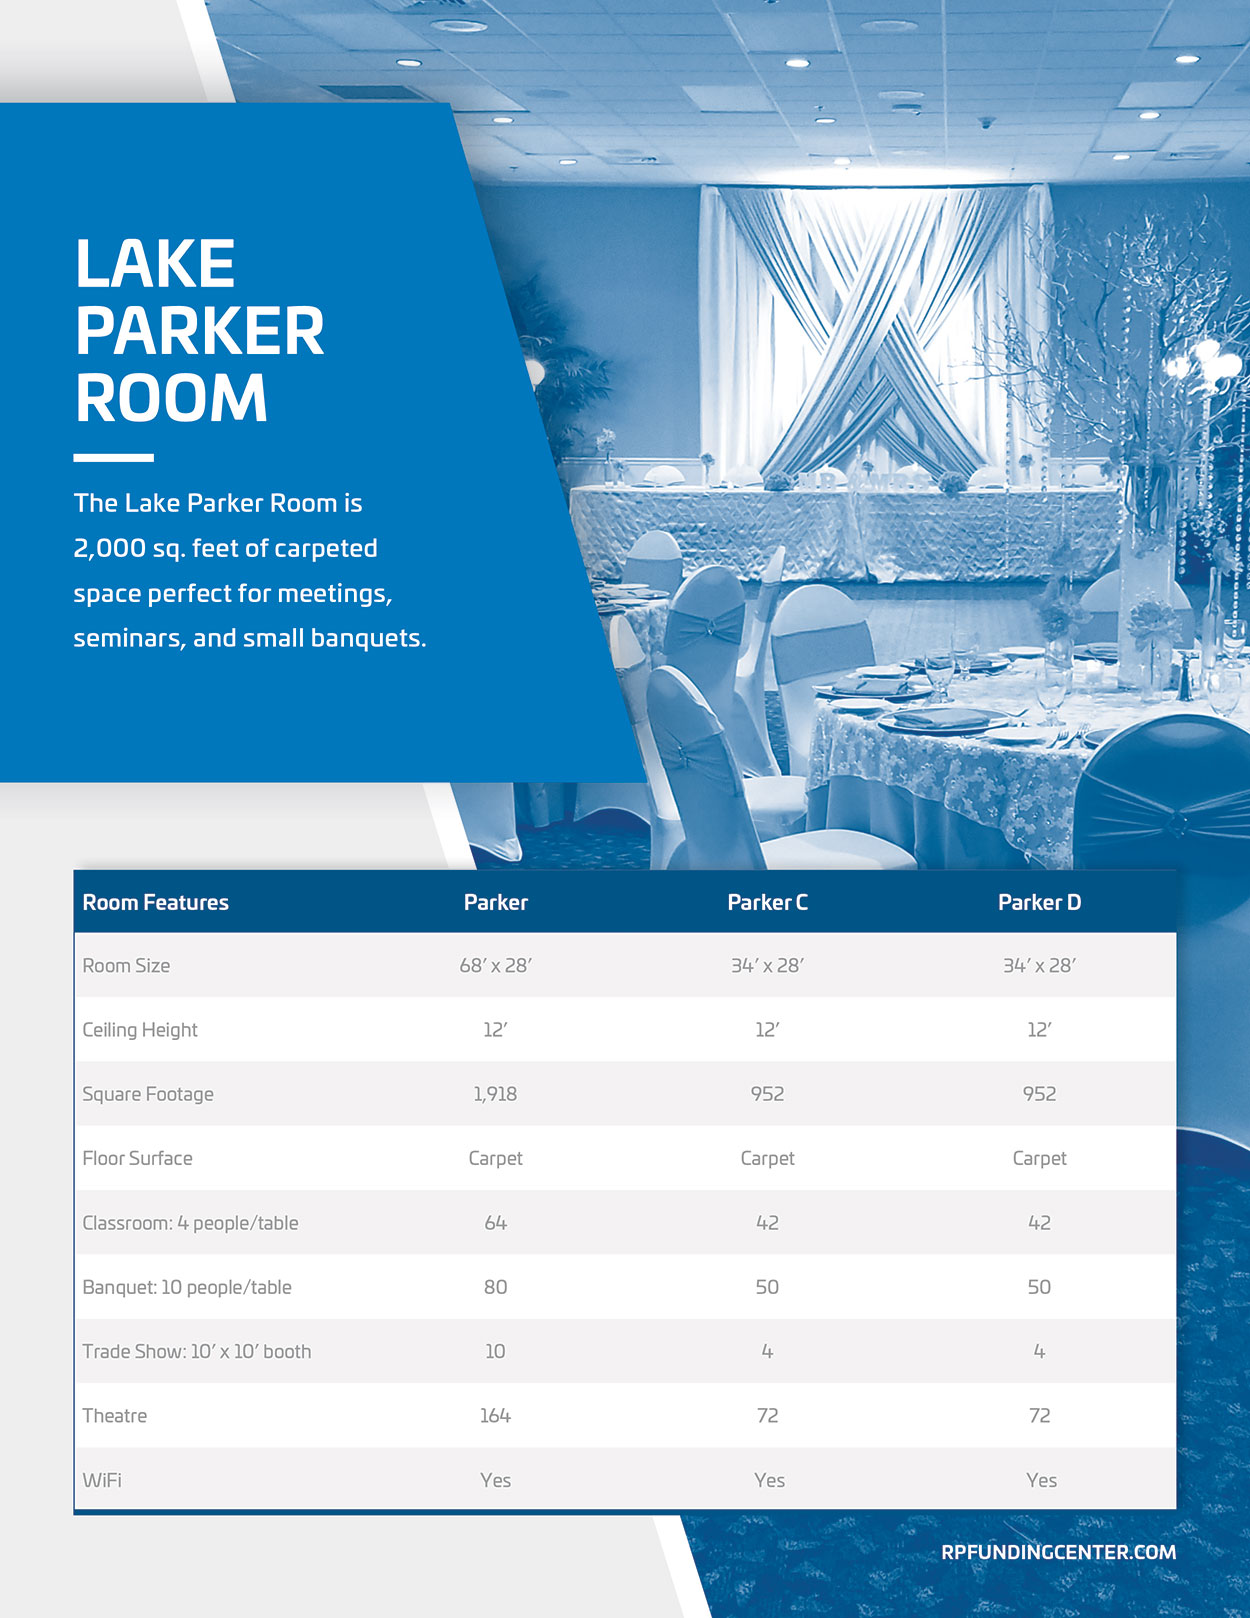 LakeParker Room Map